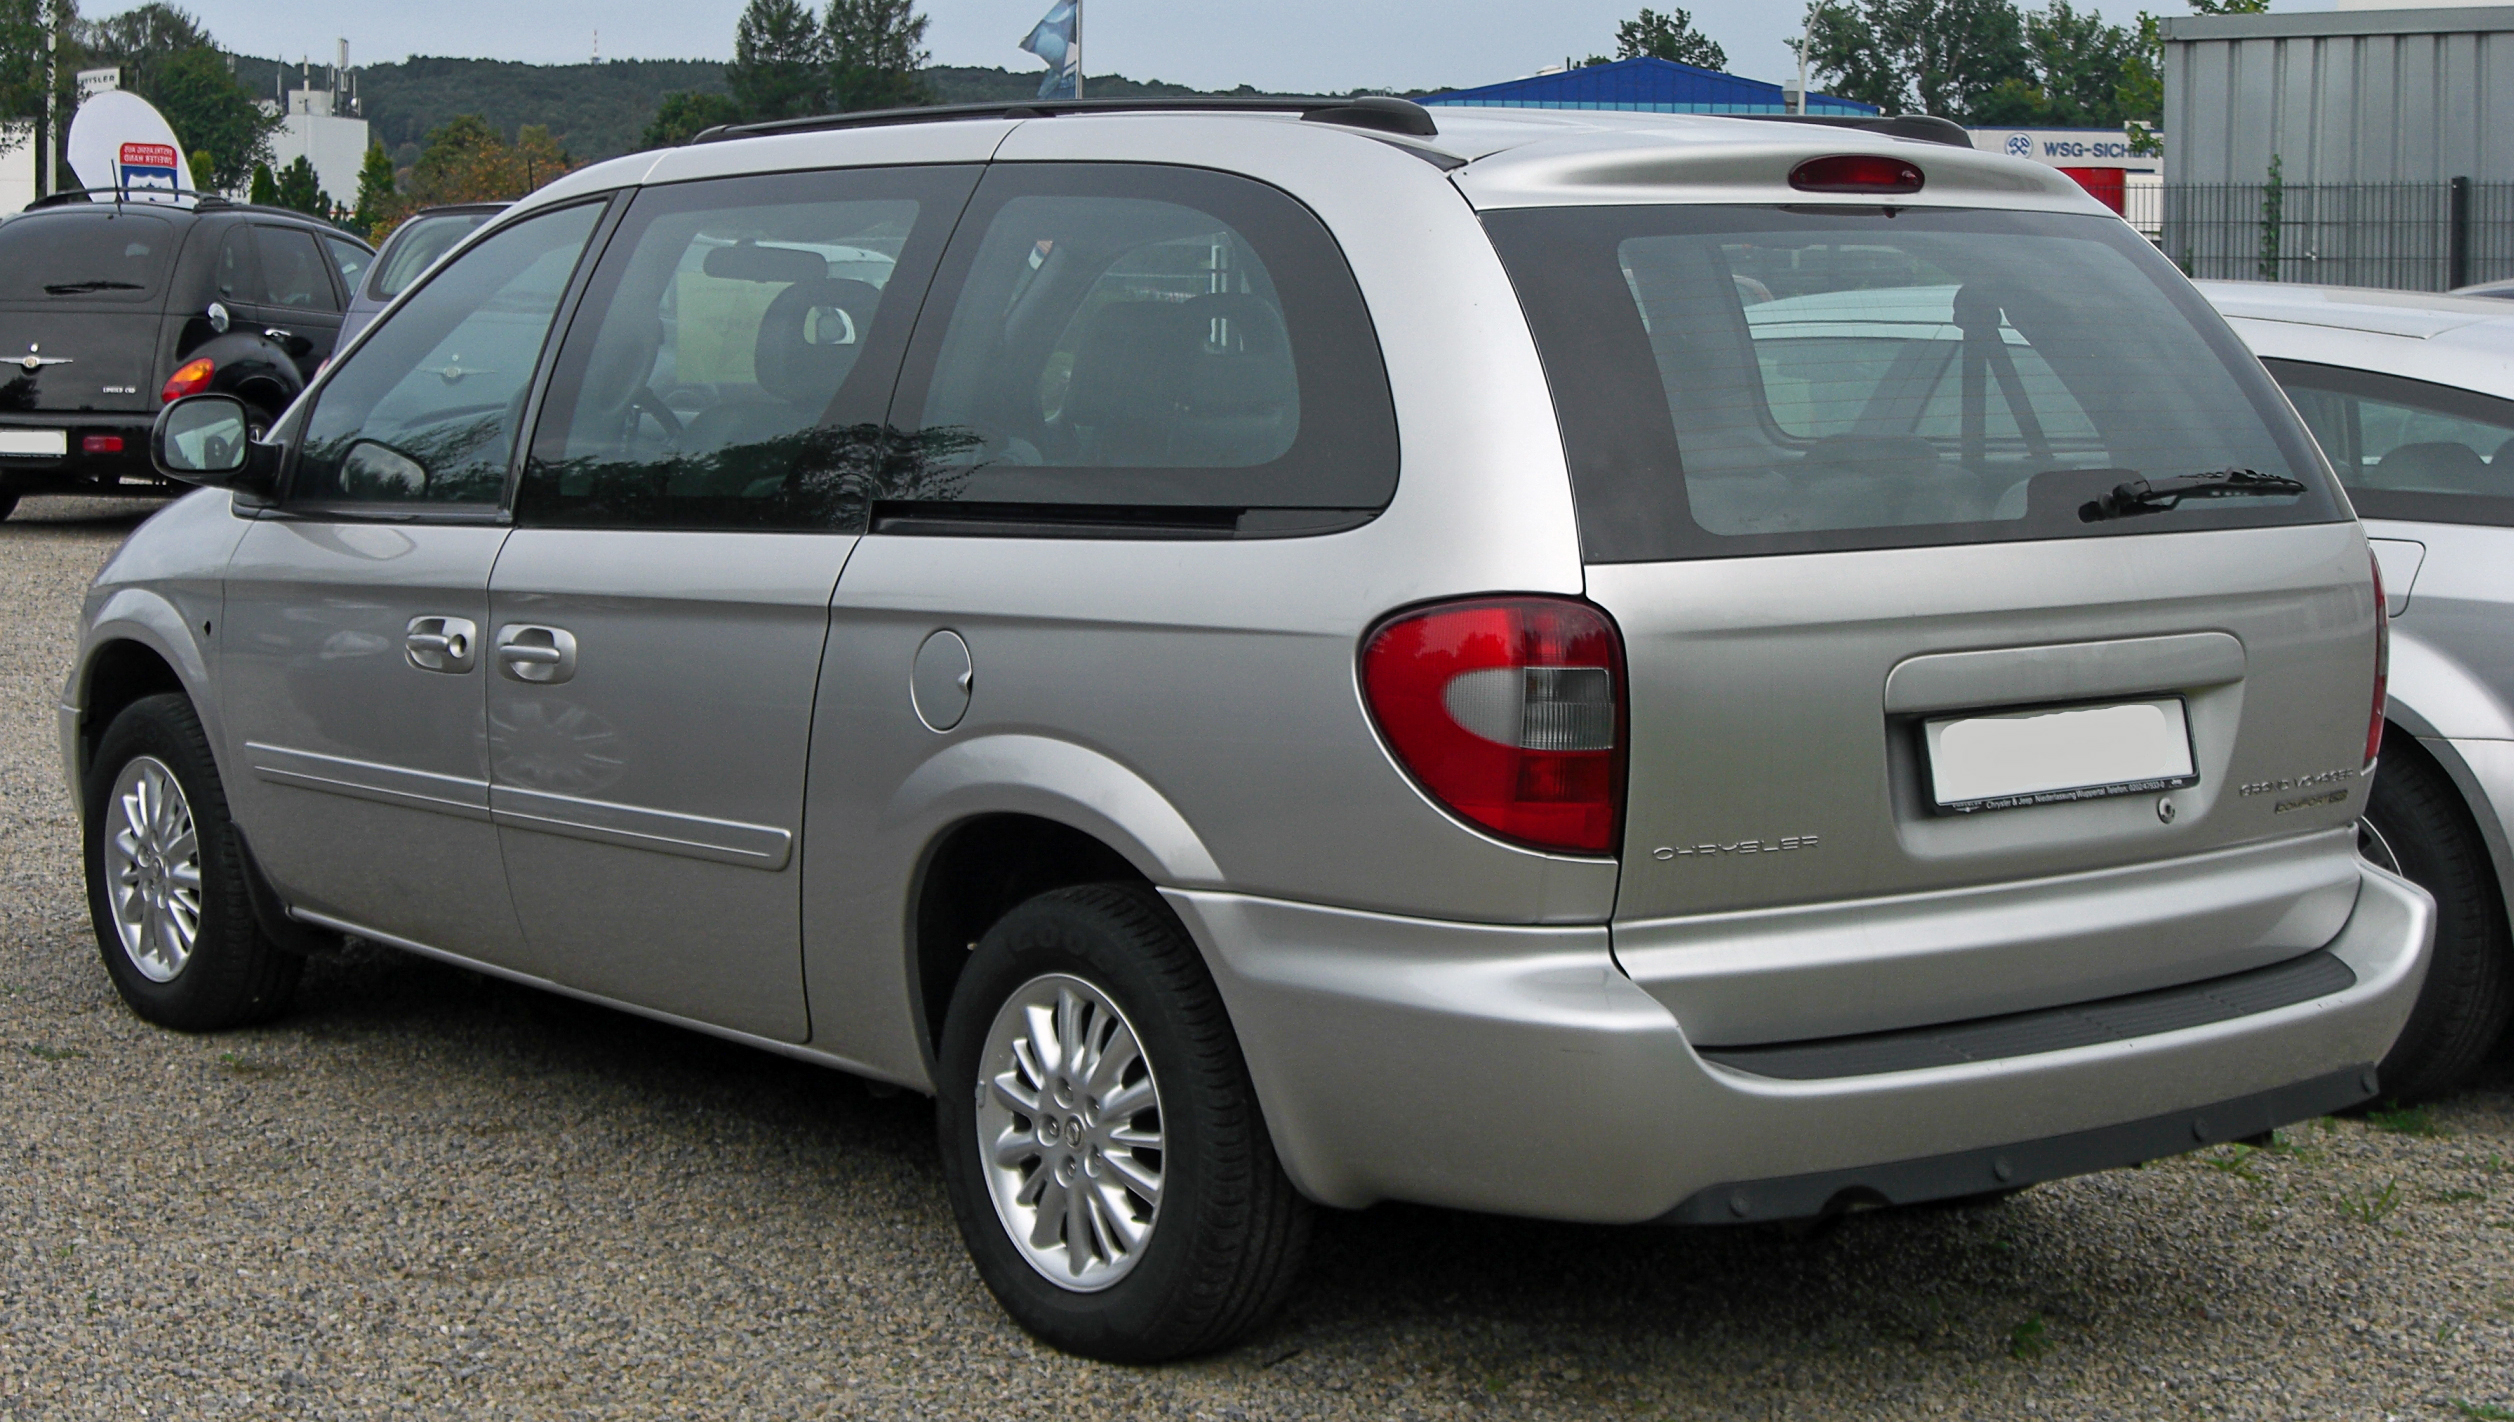 file chrysler grand voyager comfort crd facelift rear jpg wikipedia. Black Bedroom Furniture Sets. Home Design Ideas